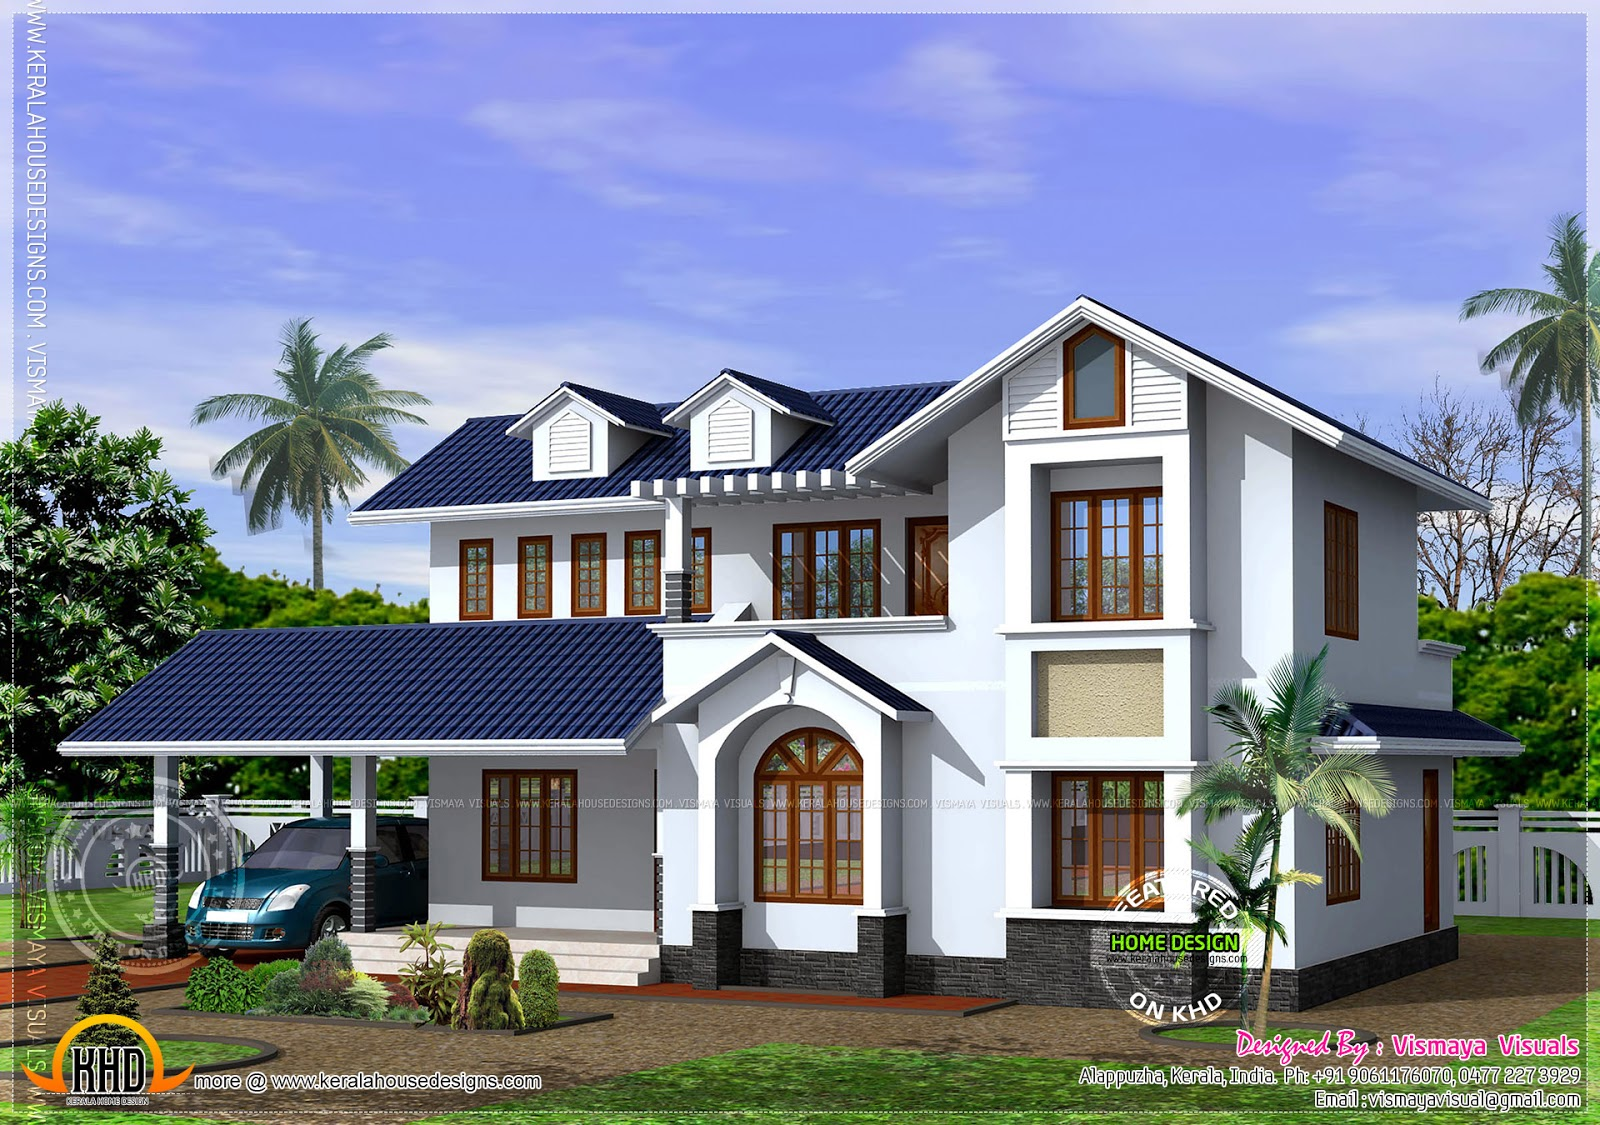 House plans sri lanka free download joy studio design for House plan kerala style free download